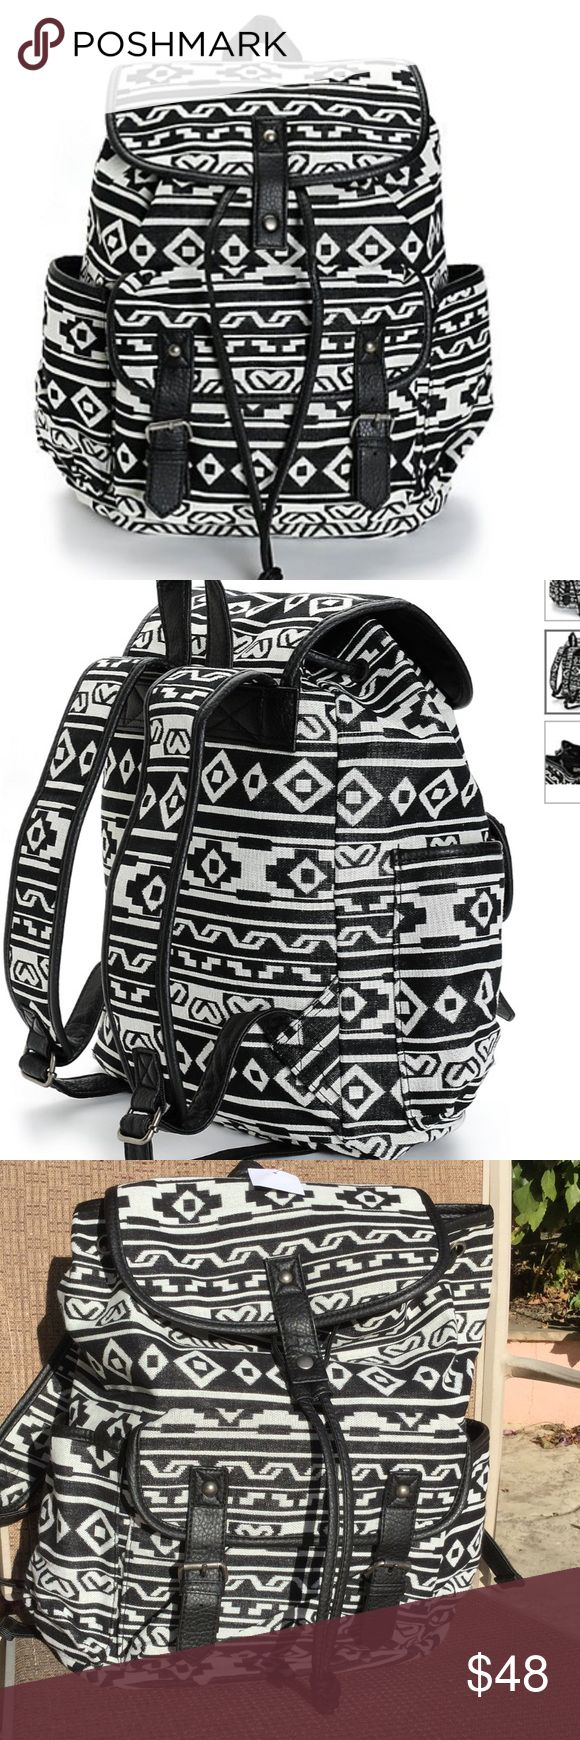 """Black and White Print w Black Trim Rucksack. NWT. Black and white print canvas rucksack backpack with black synthetic leather trim. Taffeta lining with cinch top and magnetic snap closures. Lightly padded adjustable shoulder straps and top handle loop. 14""""H x 15""""W x 6""""D.  60% cotton, 40% polyester. NWT. Zippered inside pocket for your phone and keys. Outside pocket 7""""H x 9""""W x 2"""" D. Bags Backpacks"""